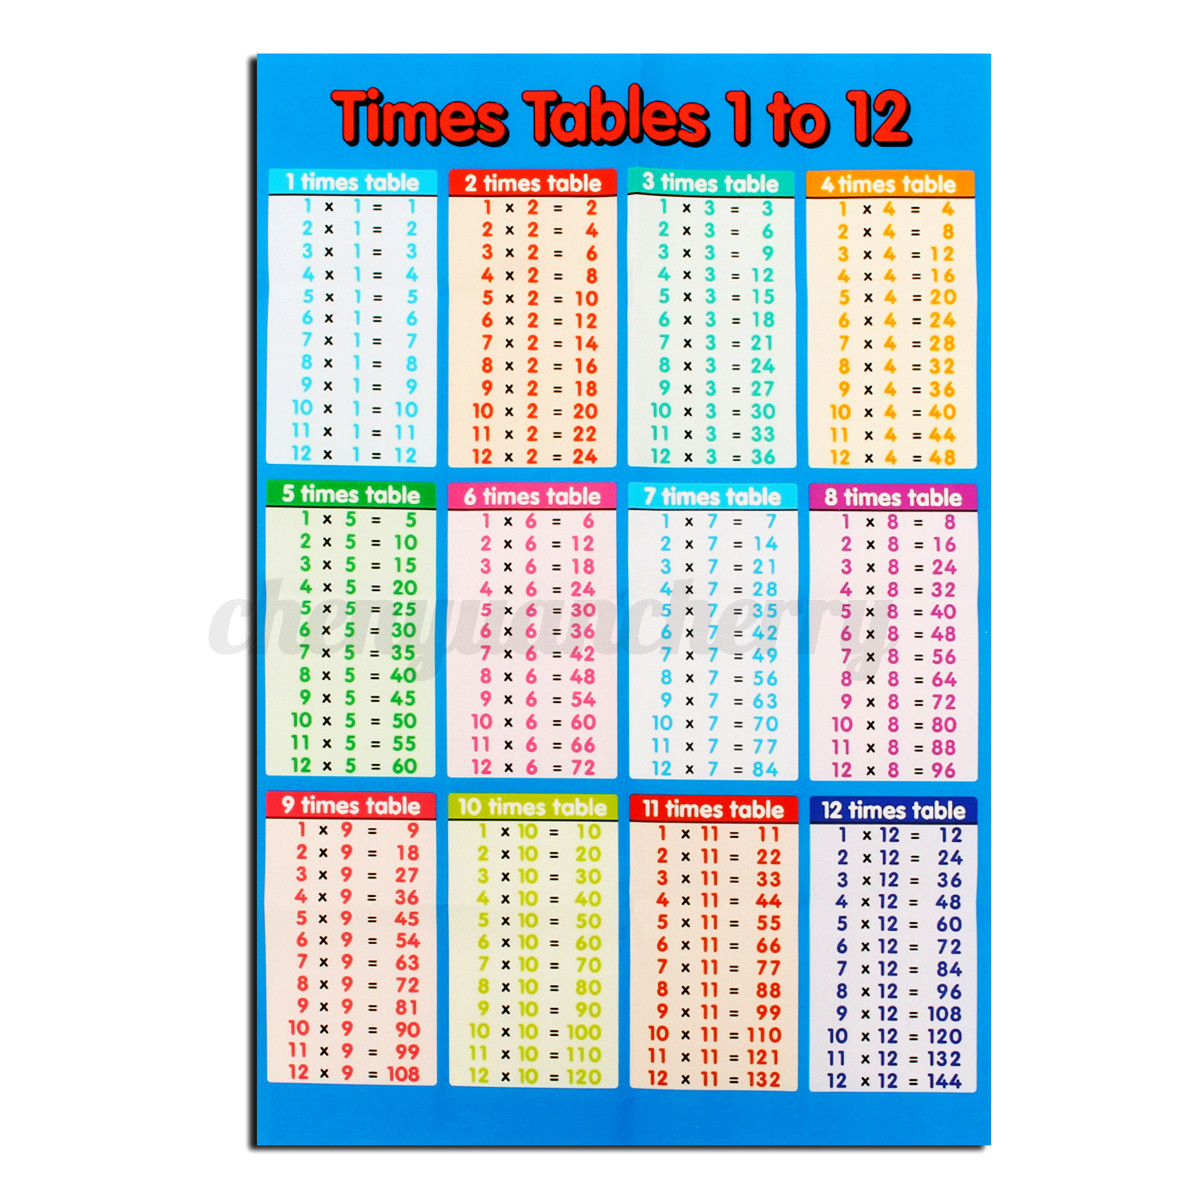 019 educational times tables maths children kids wall for Les table de multiplications